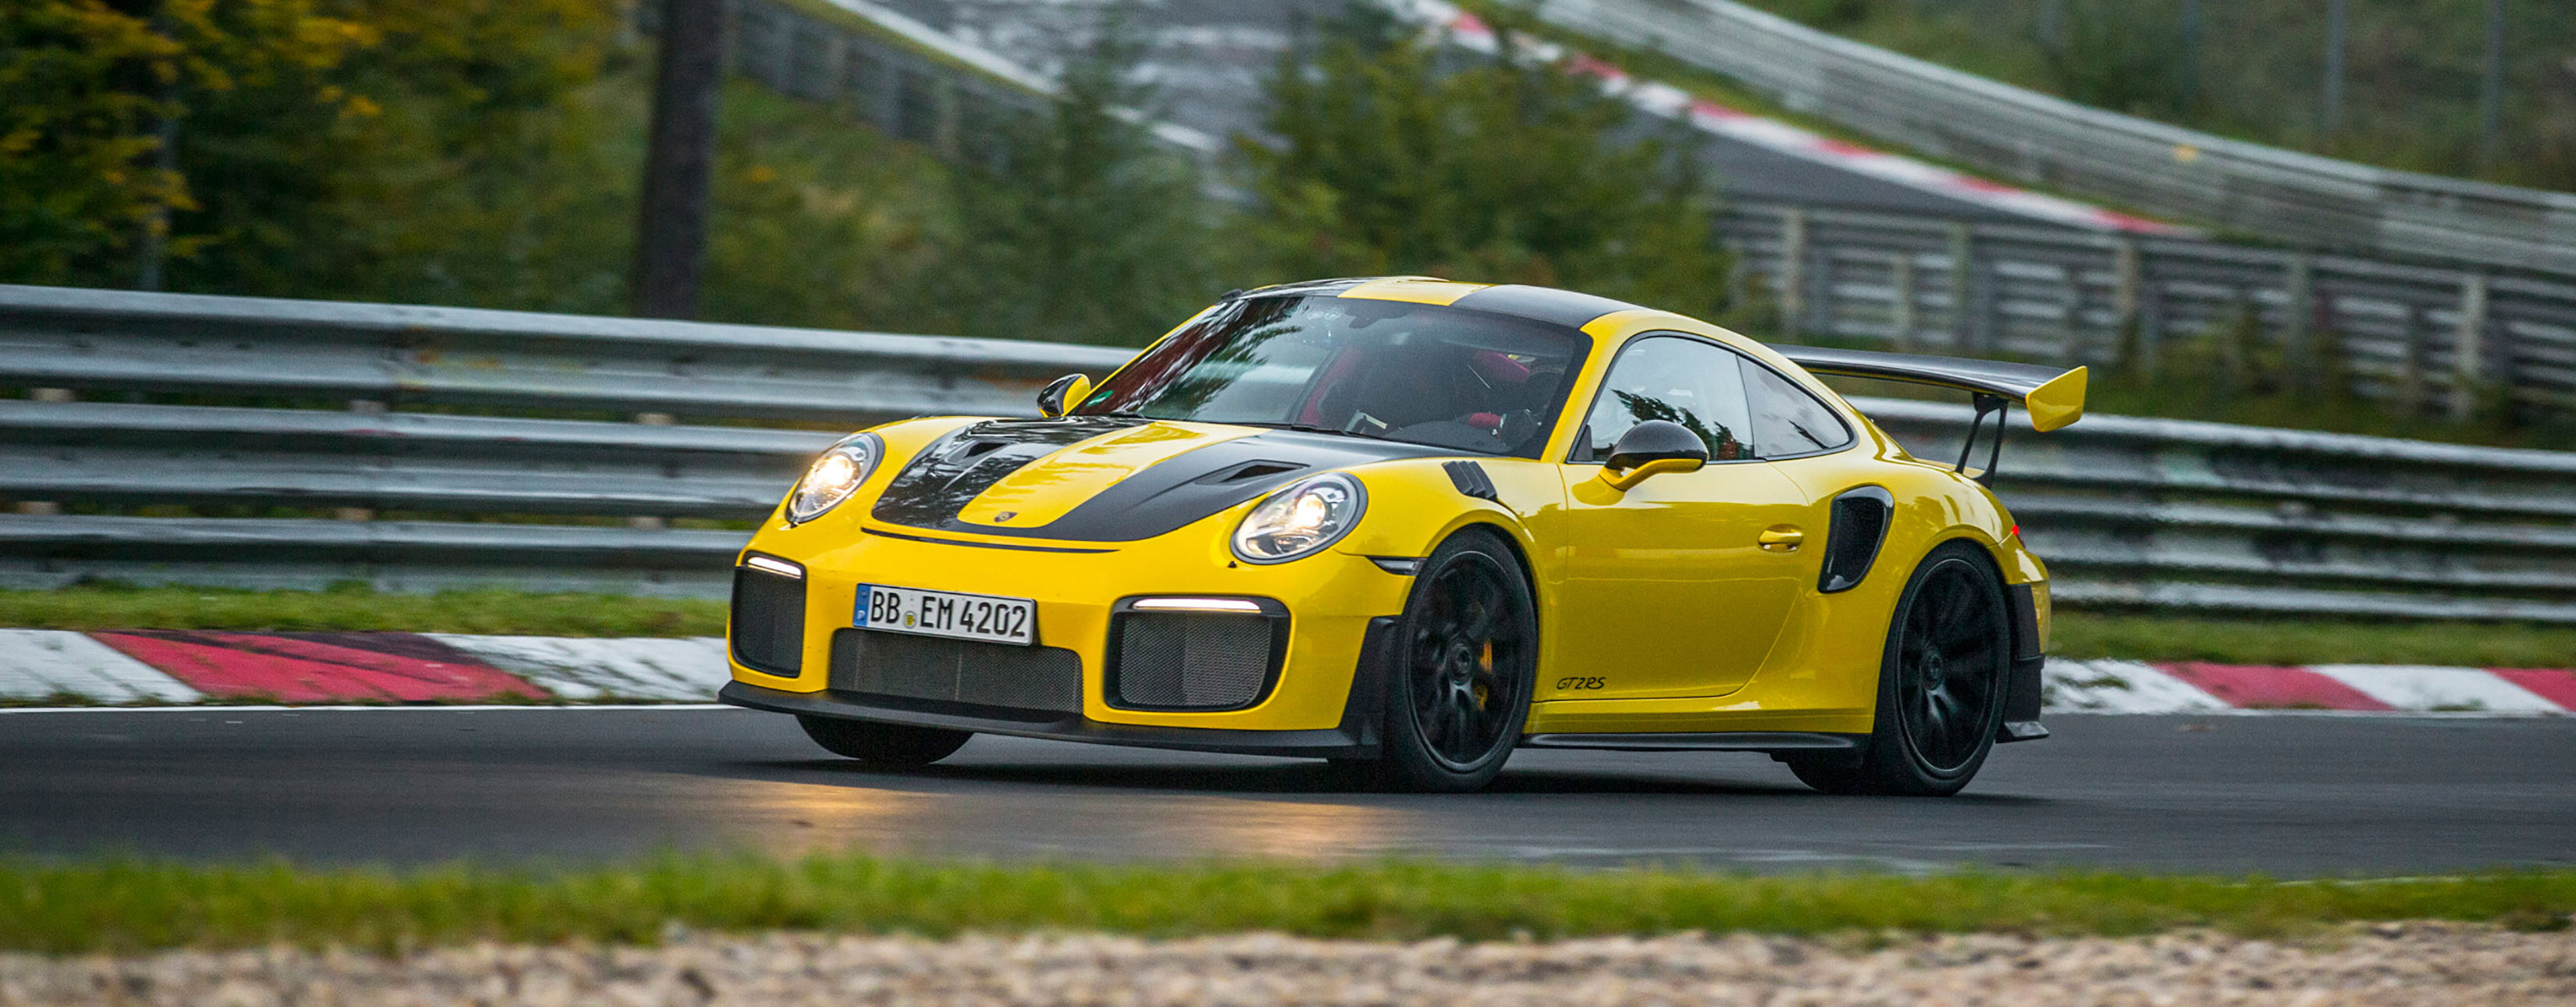 TrackWorthy  - Porsche 911 GT2 RS (2)